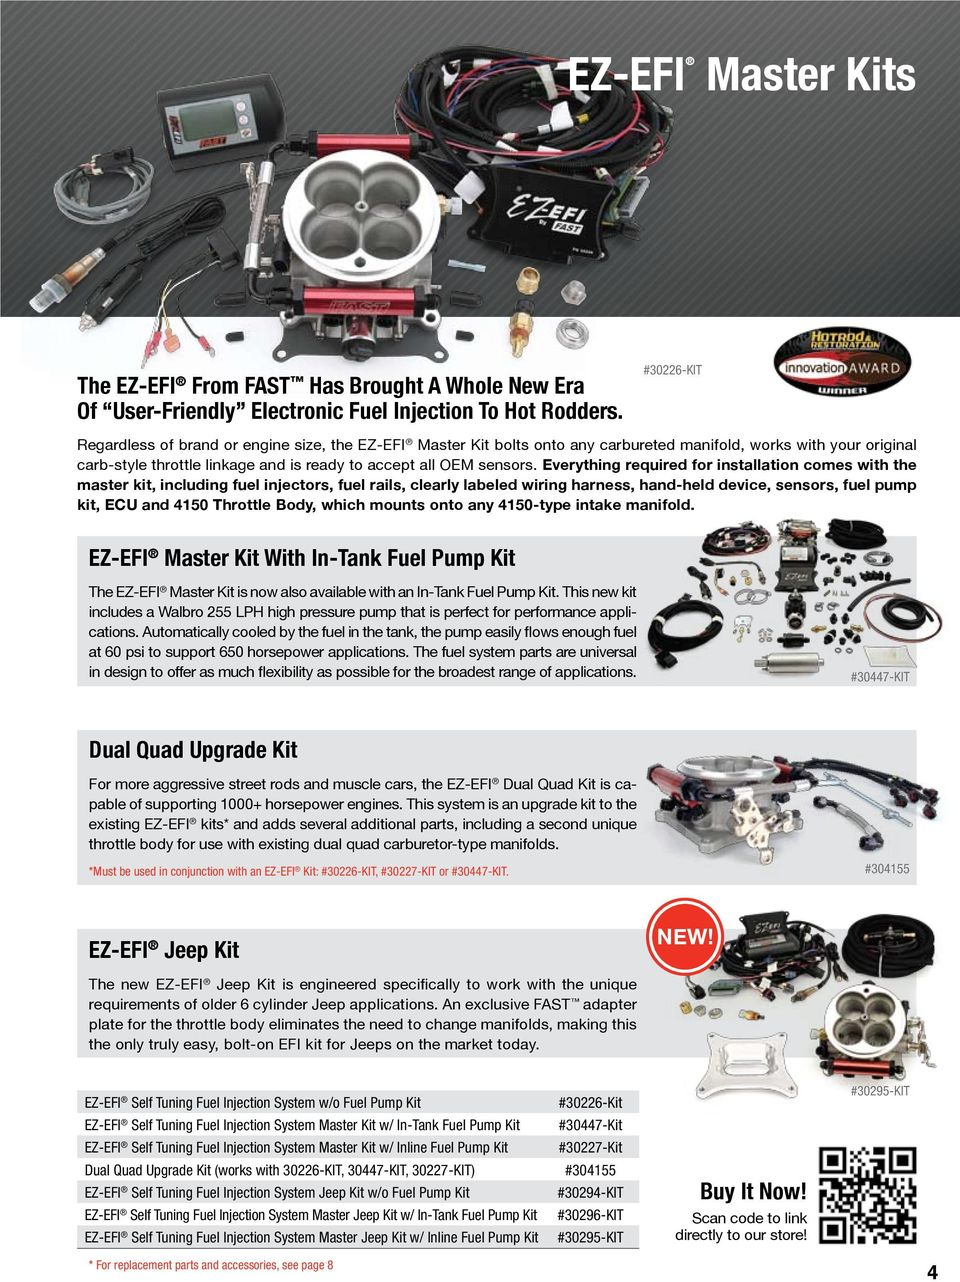 Efi Help Pdf Ez Tcu Controller Wiring Diagram Everything Required For Installation Comes With The Master Kit Including Fuel Injectors Rails